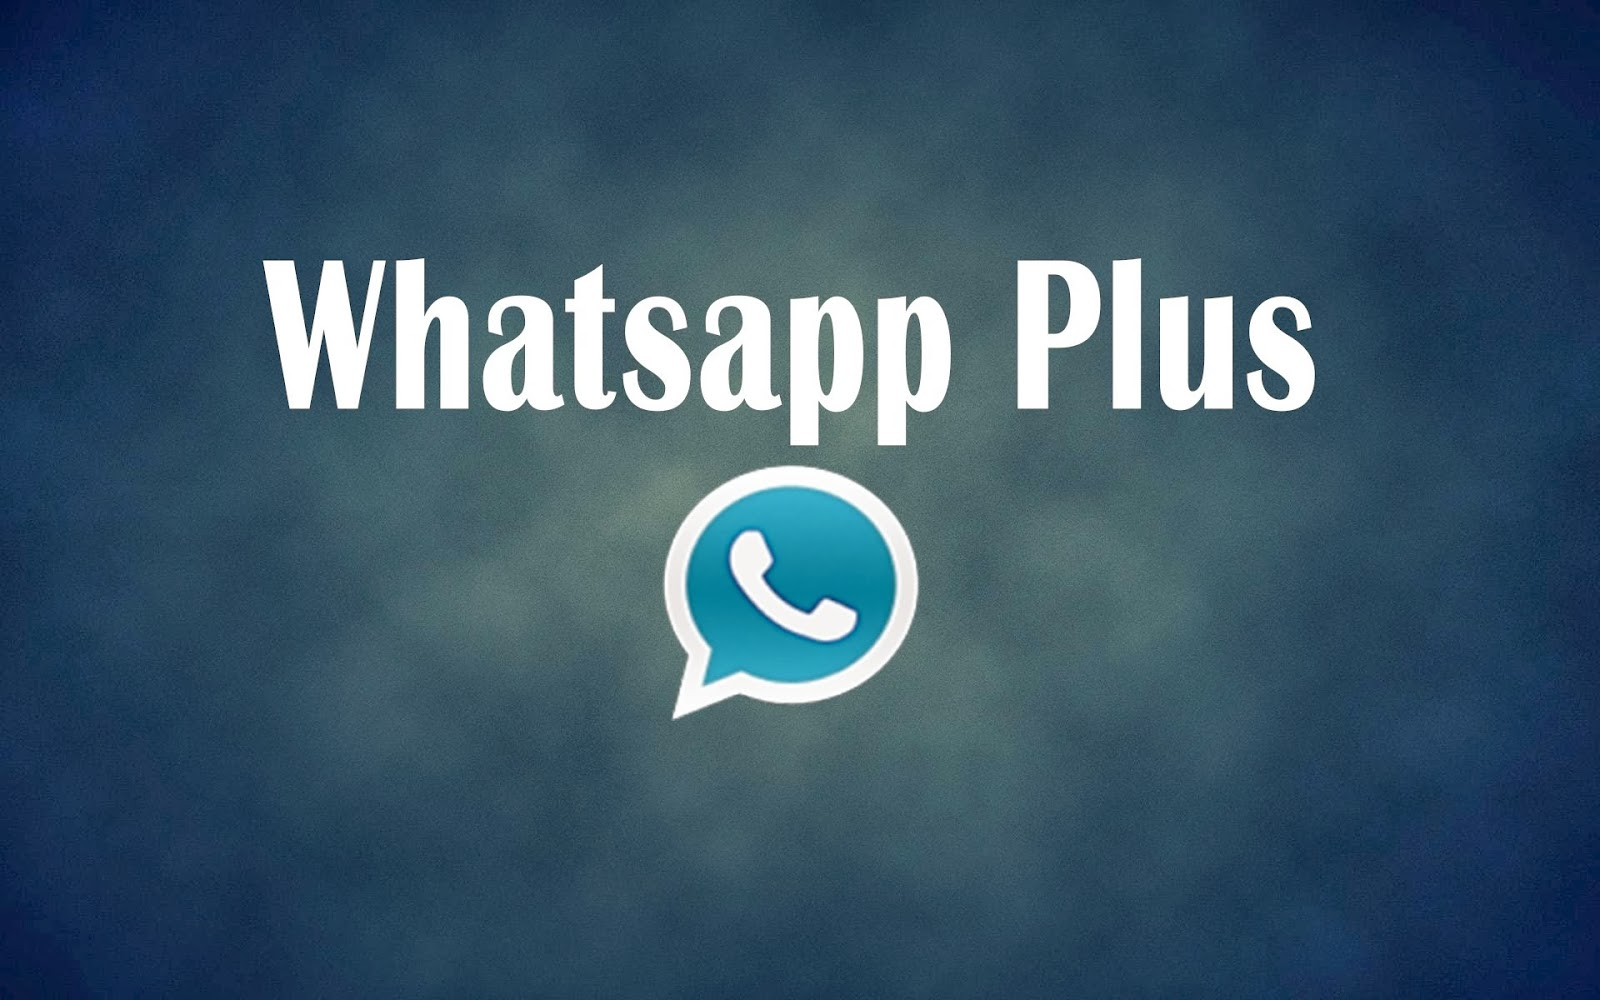 Whatsapp Plus Reborn Image